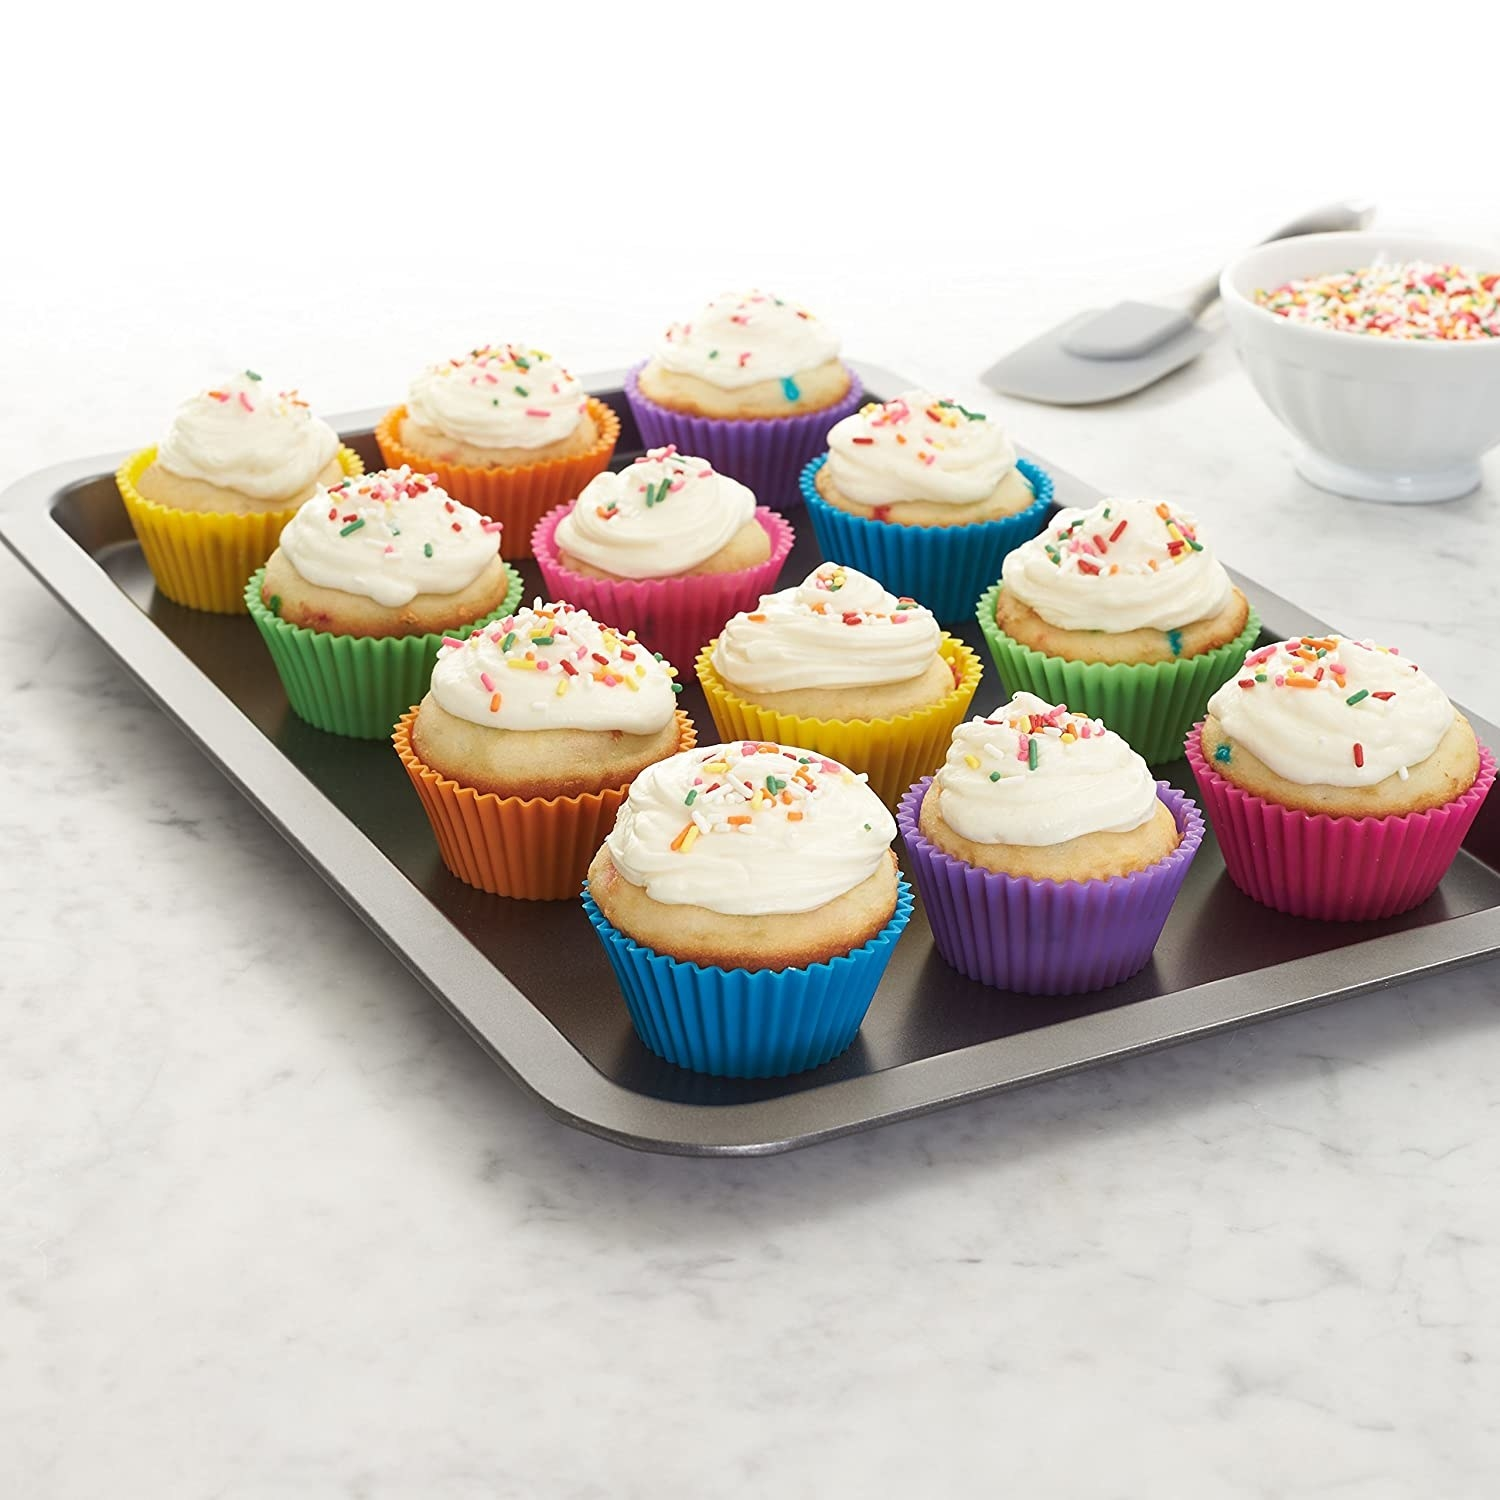 A tray of baked cupcakes in colourful silicone cupcake moulds